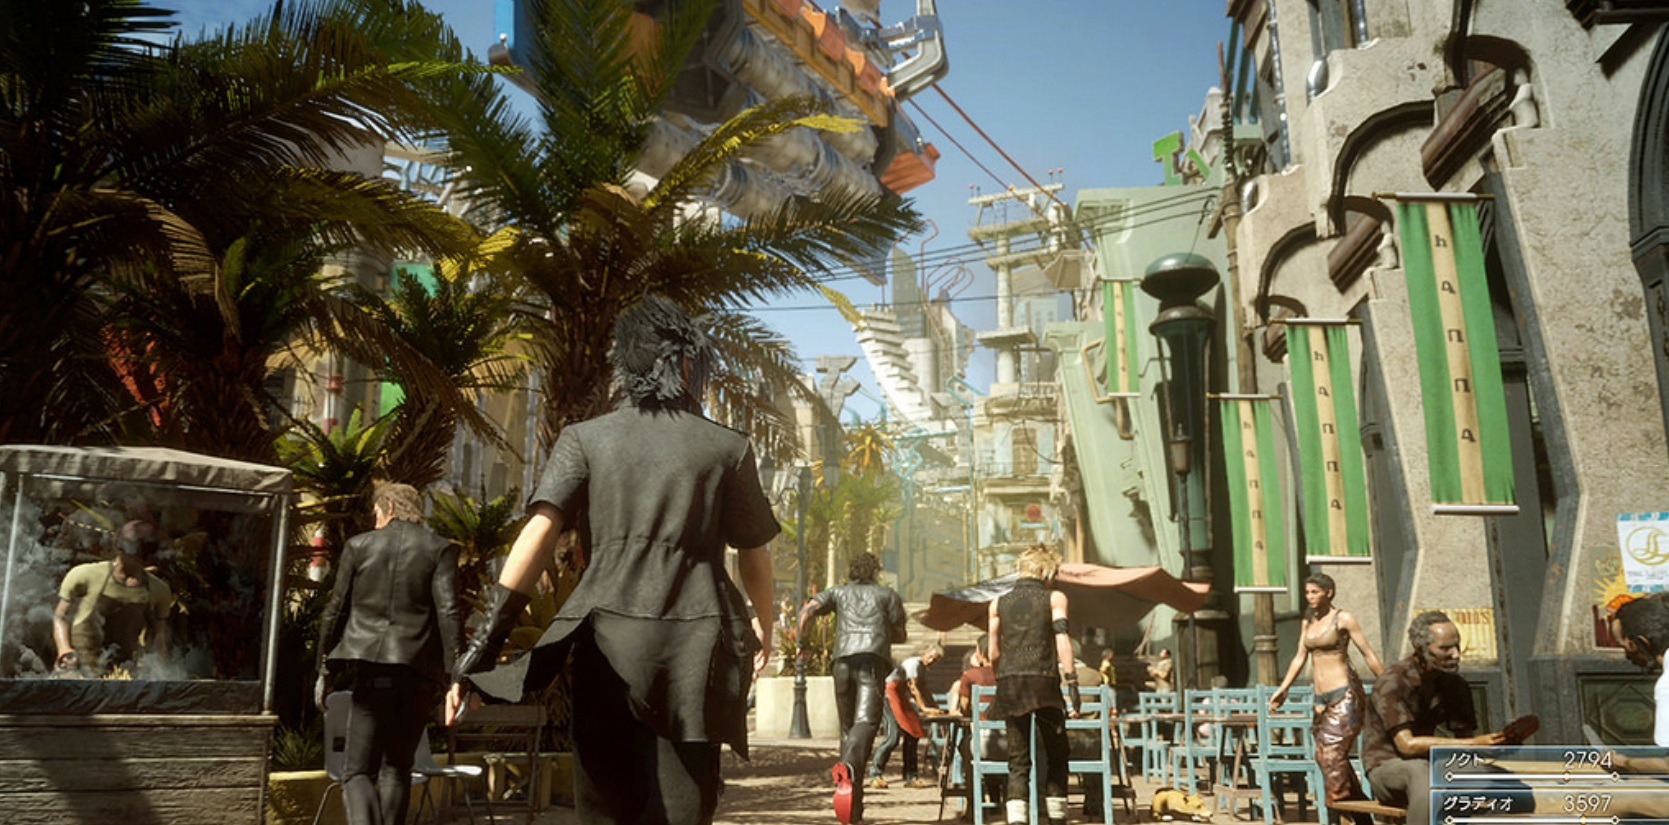 final-fantasy-xv-town-npcs-palm-trees-gameplay-screenshot-ps4-xbox-one